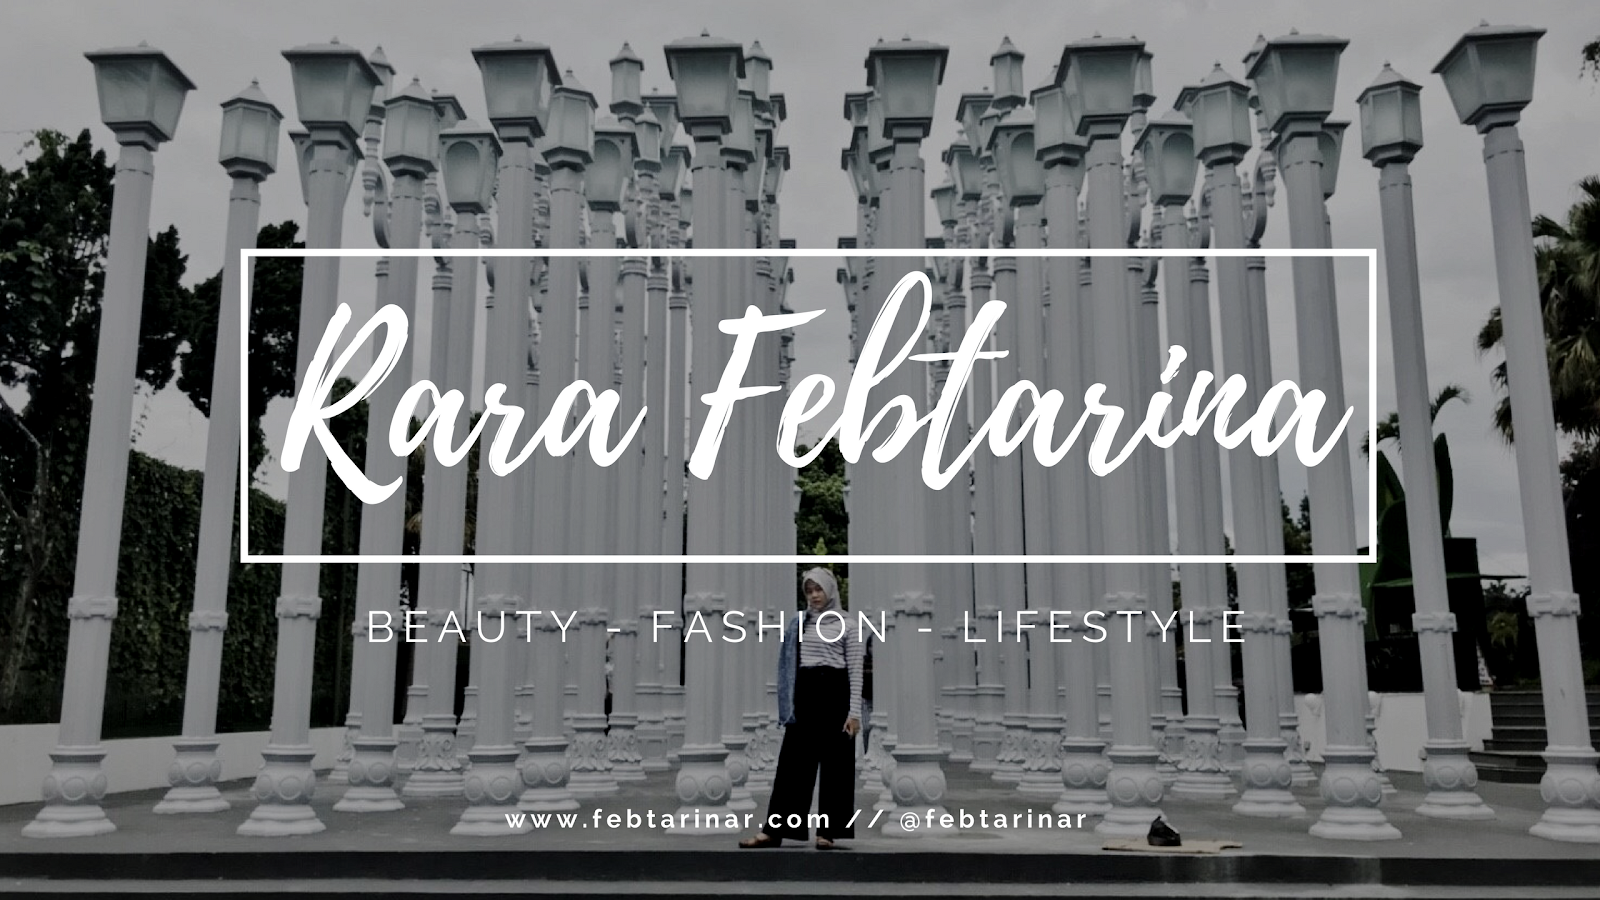 Rara Febtarina - Beauty, Fashion and Lifestyle